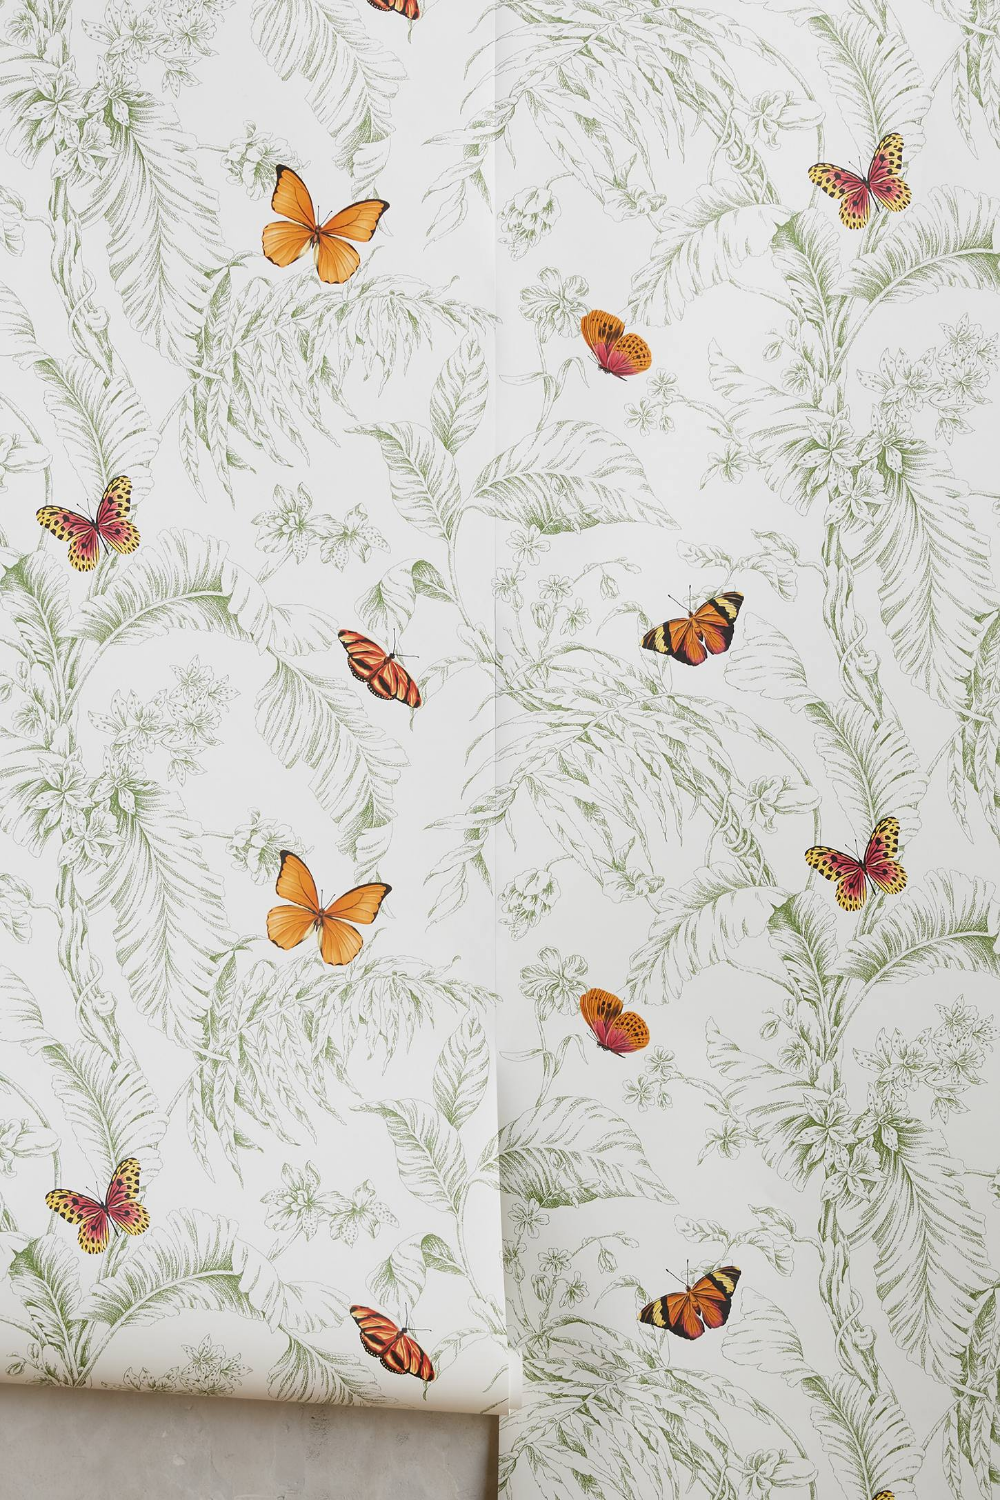 Papillon Wallpaper by Anthropologie in Black, Wall Decor